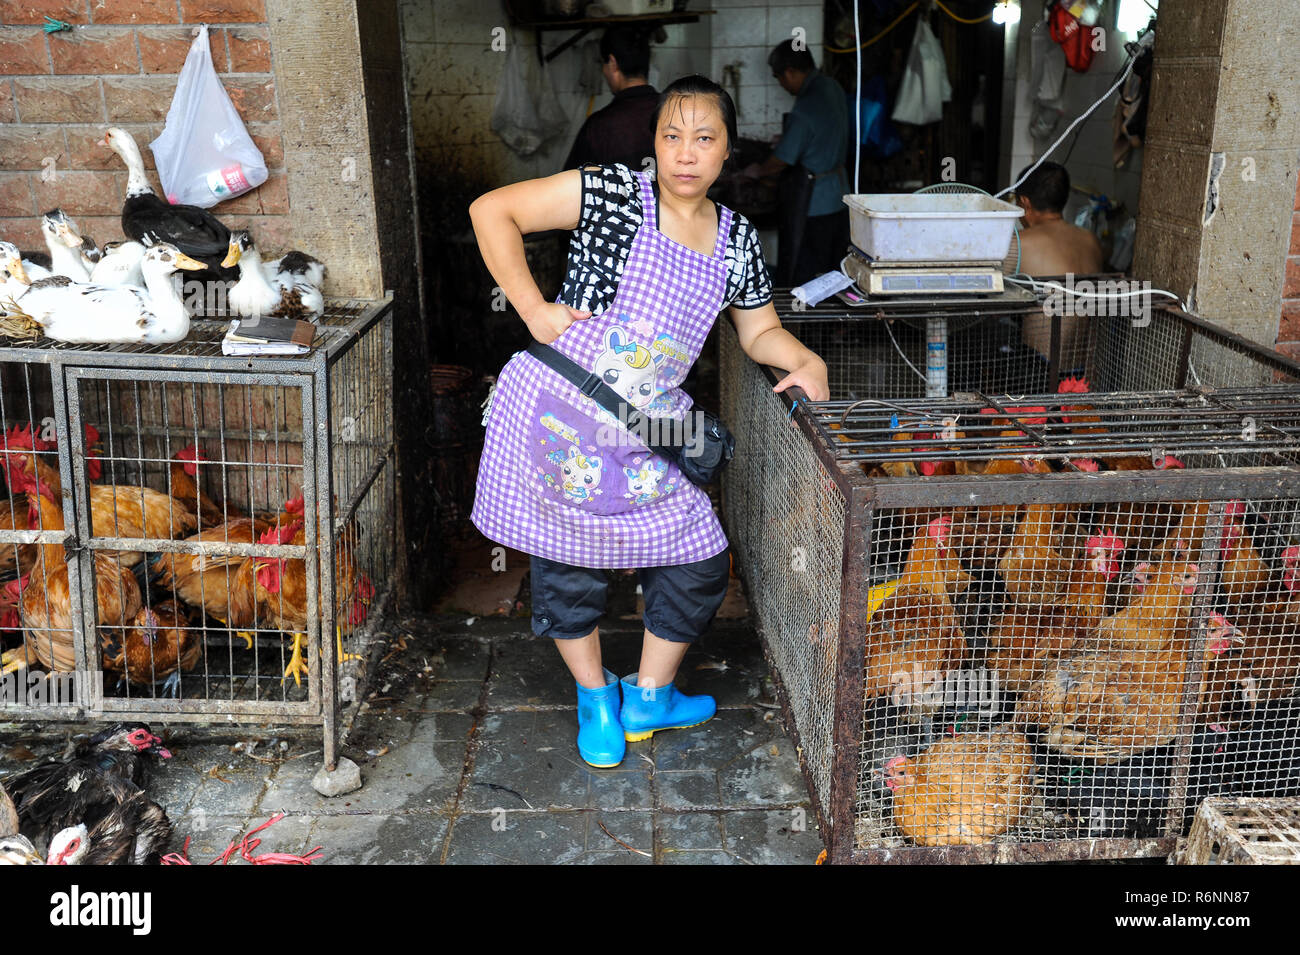 04.08.2012, Chongqing, China, Asia - A female butcher is standing in front of a butcher shop that sells poultry. Stock Photo